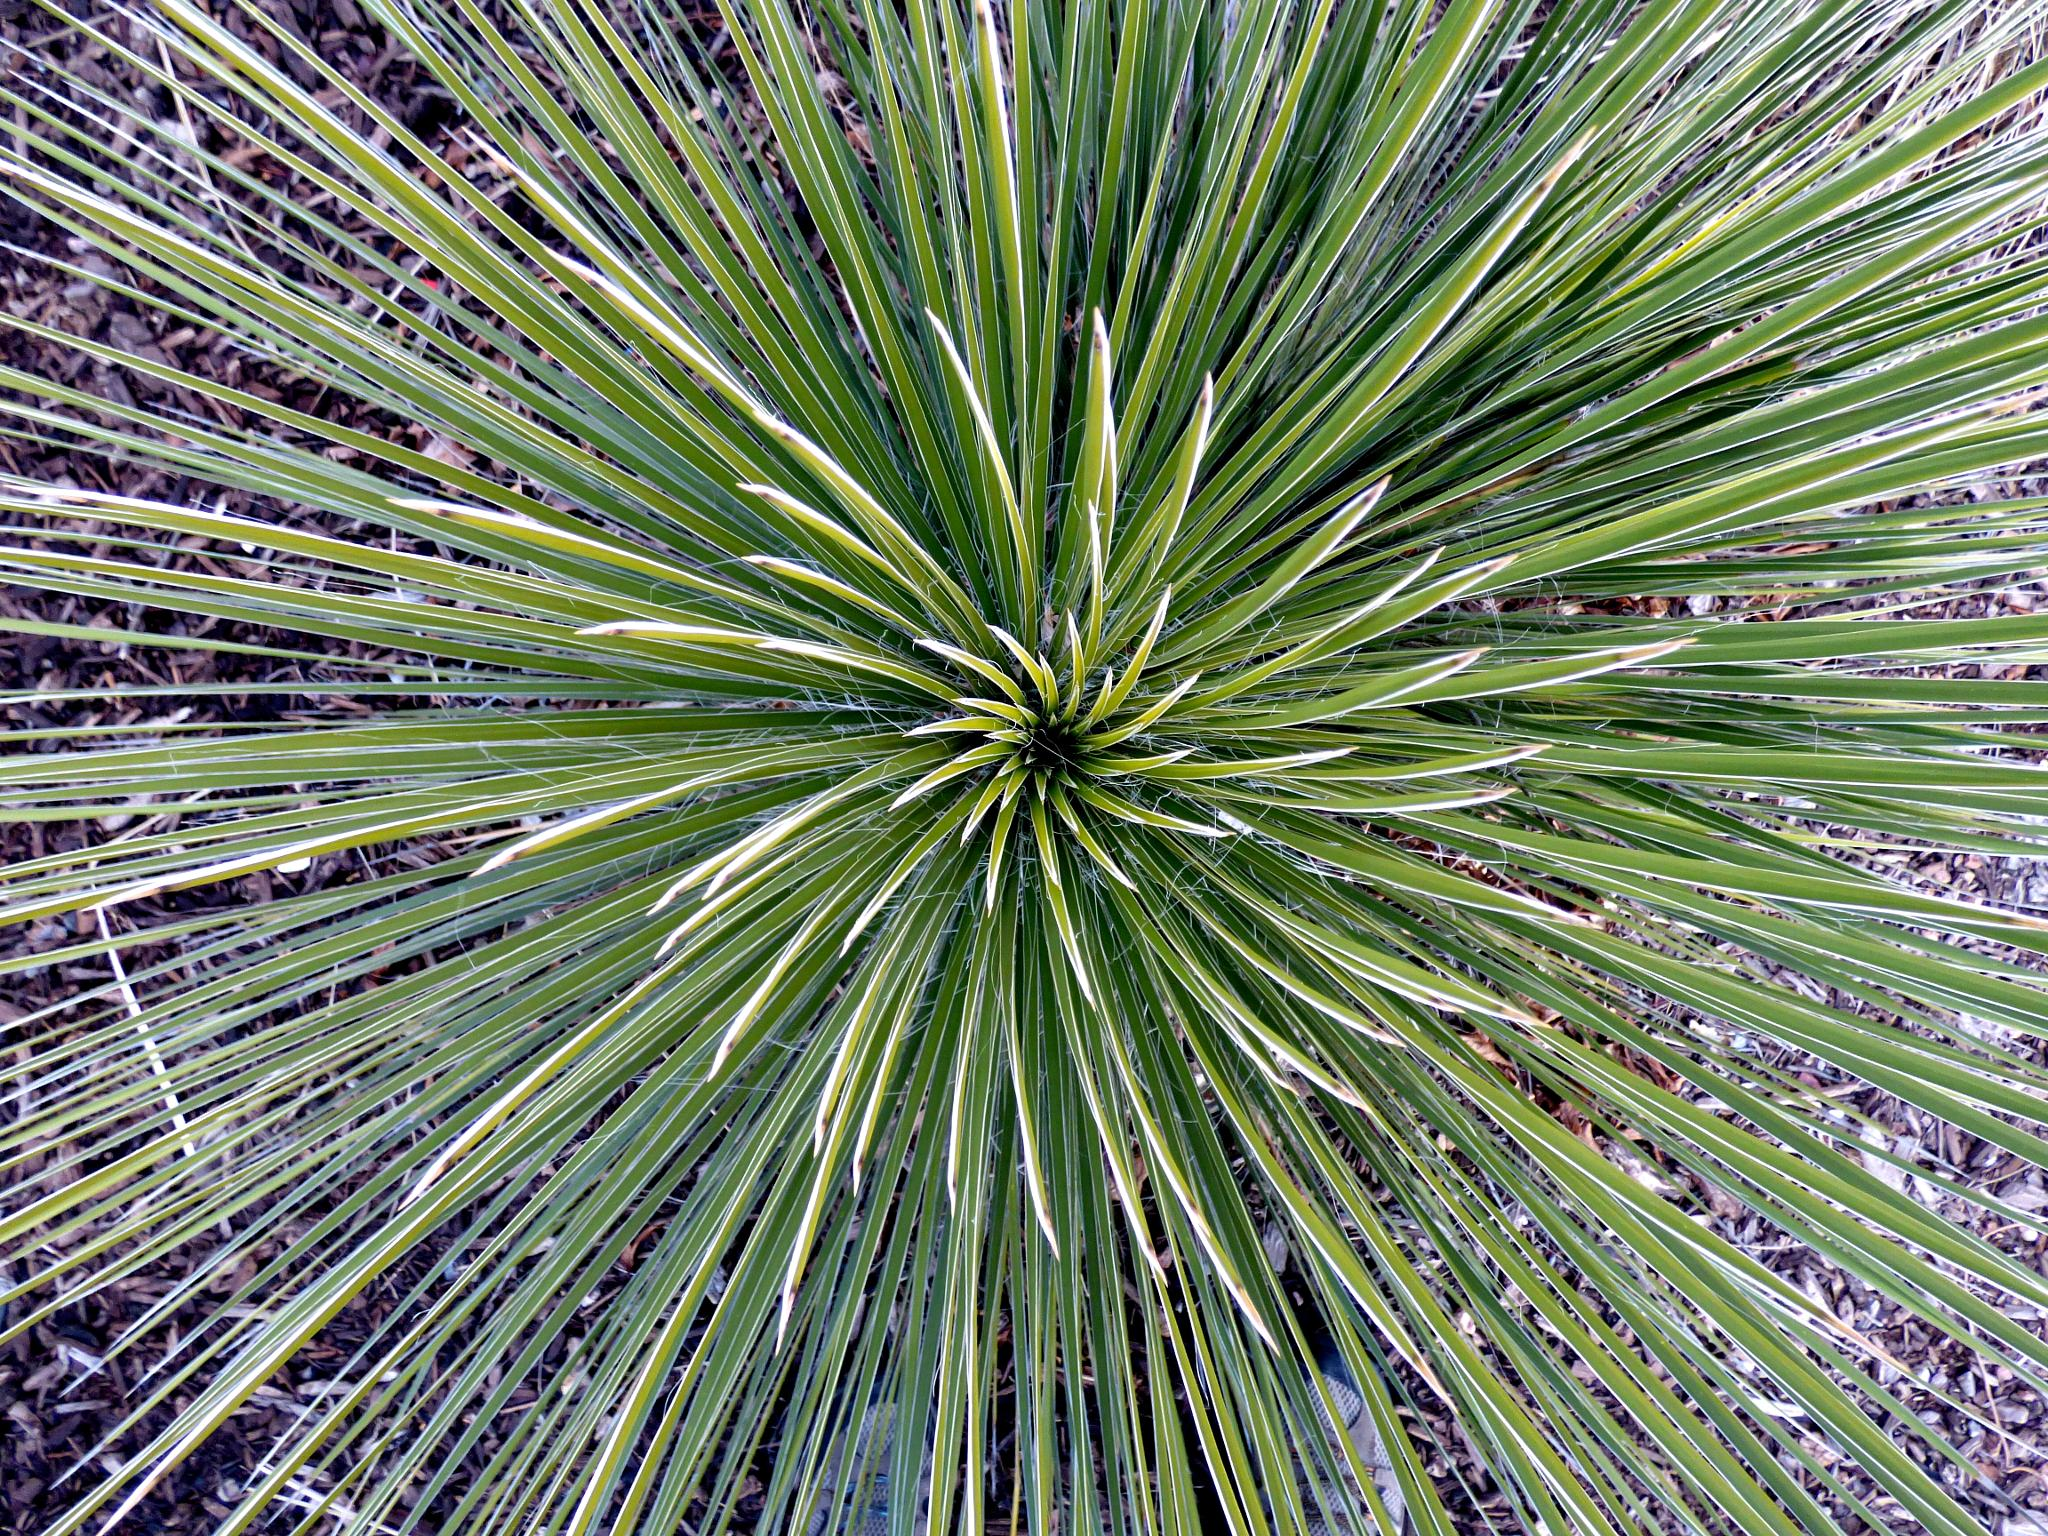 Soapweed Yucca by Hunter Ten Broeck